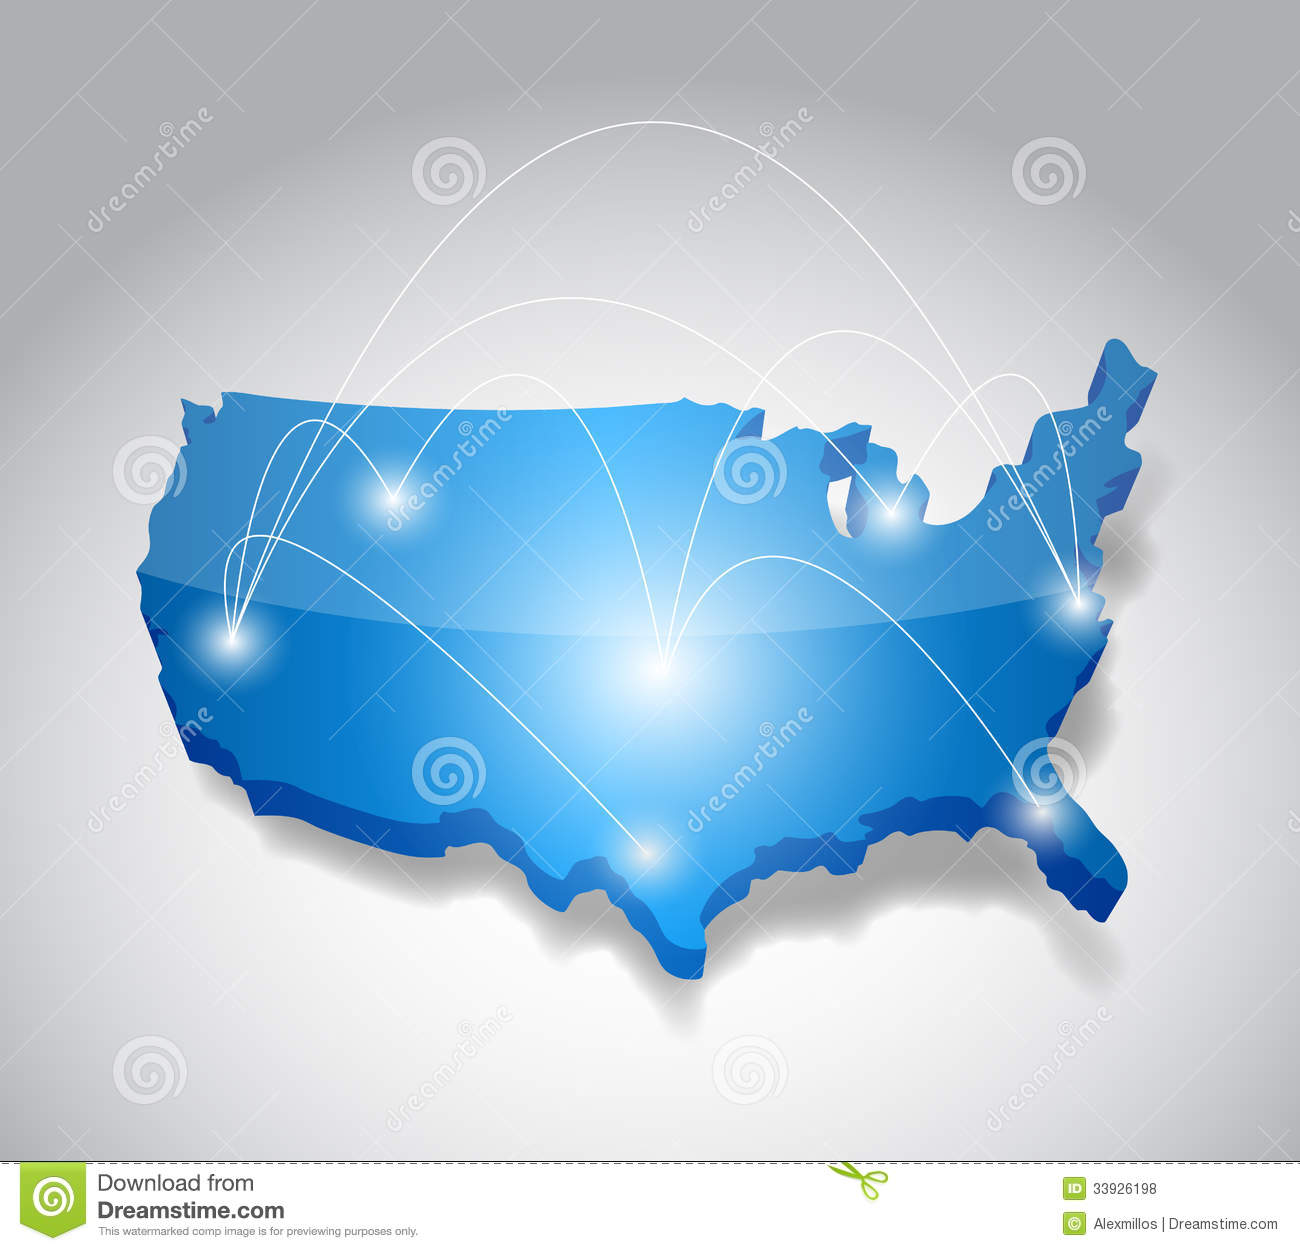 Usa Map Network Connection Concept Illustration Stock Illustration